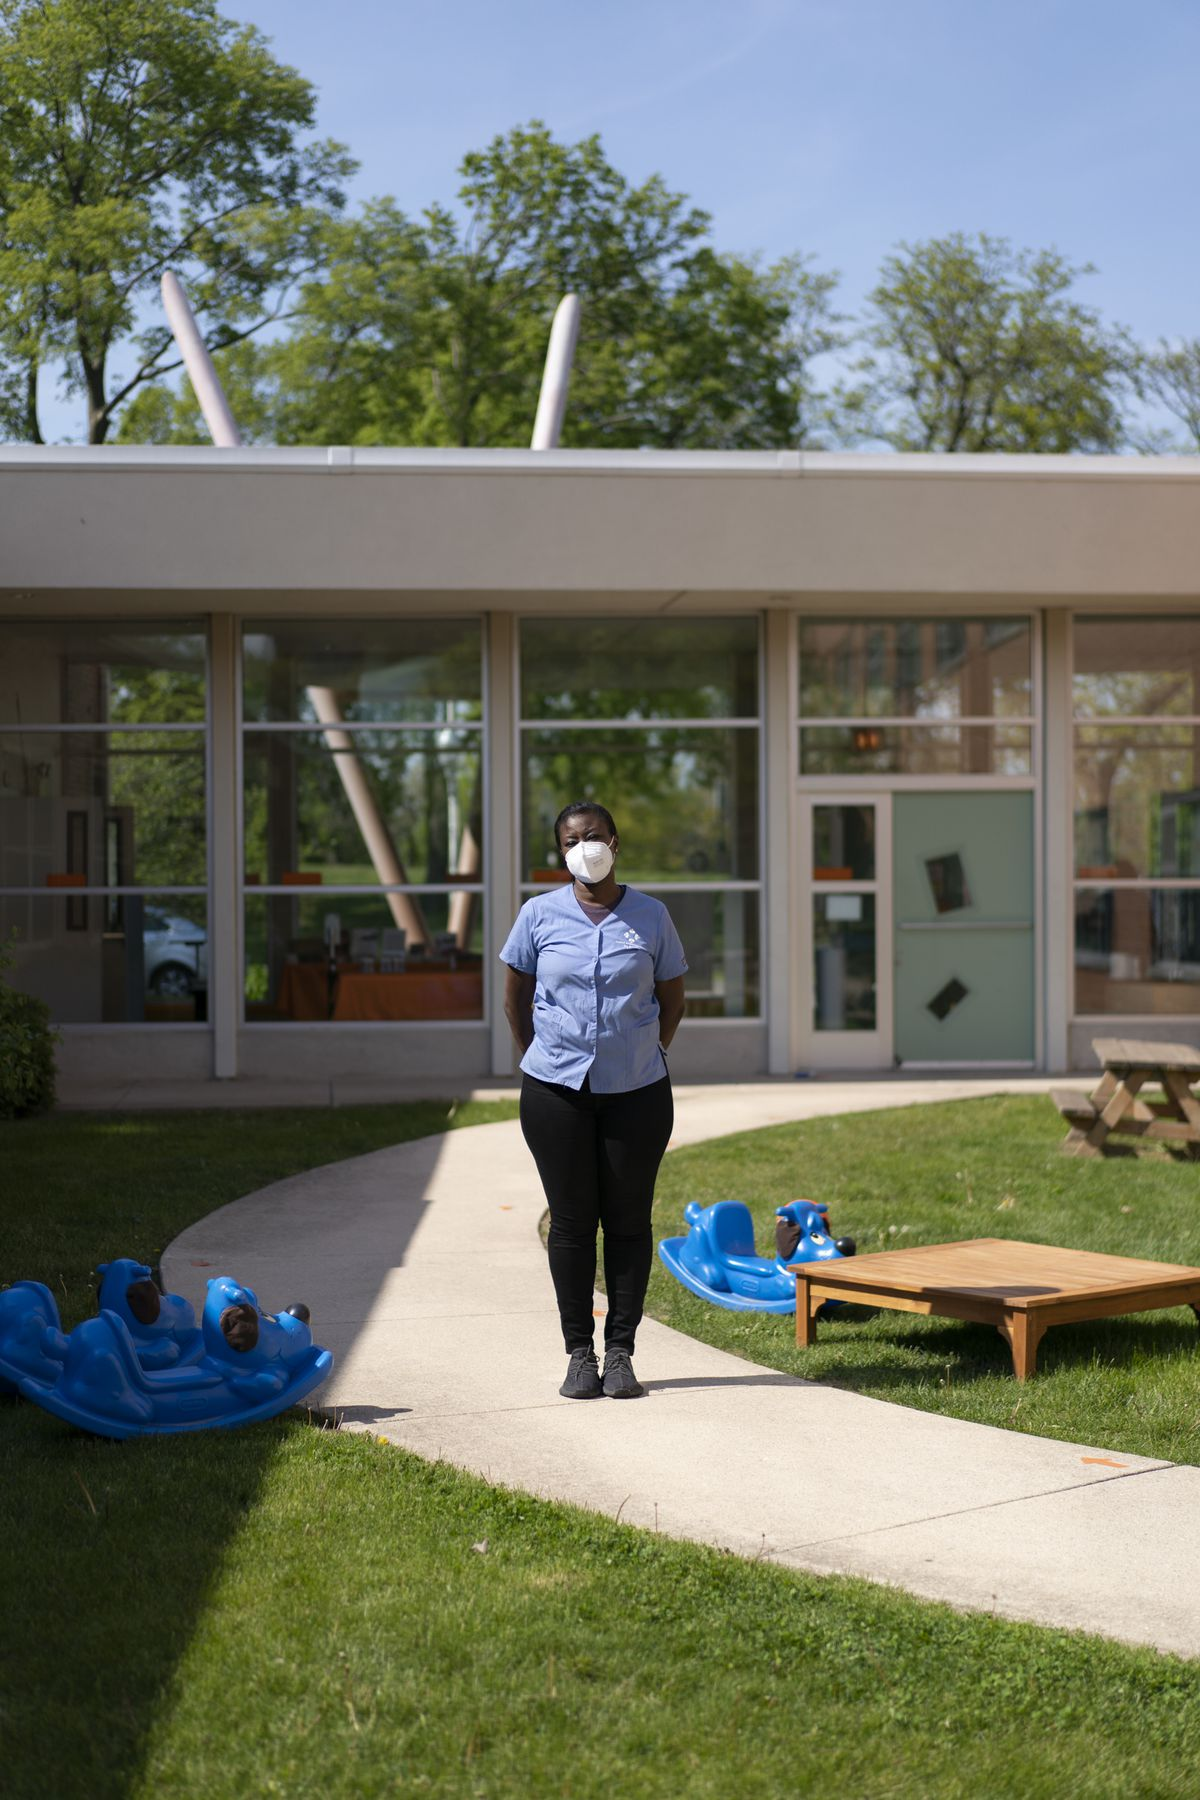 A woman wearing a blue shirt, black pants and a KN-95 mask stands for a portrait in front of a building with large glass windows. There are blue rocking toys and a wood table next to her on either side.